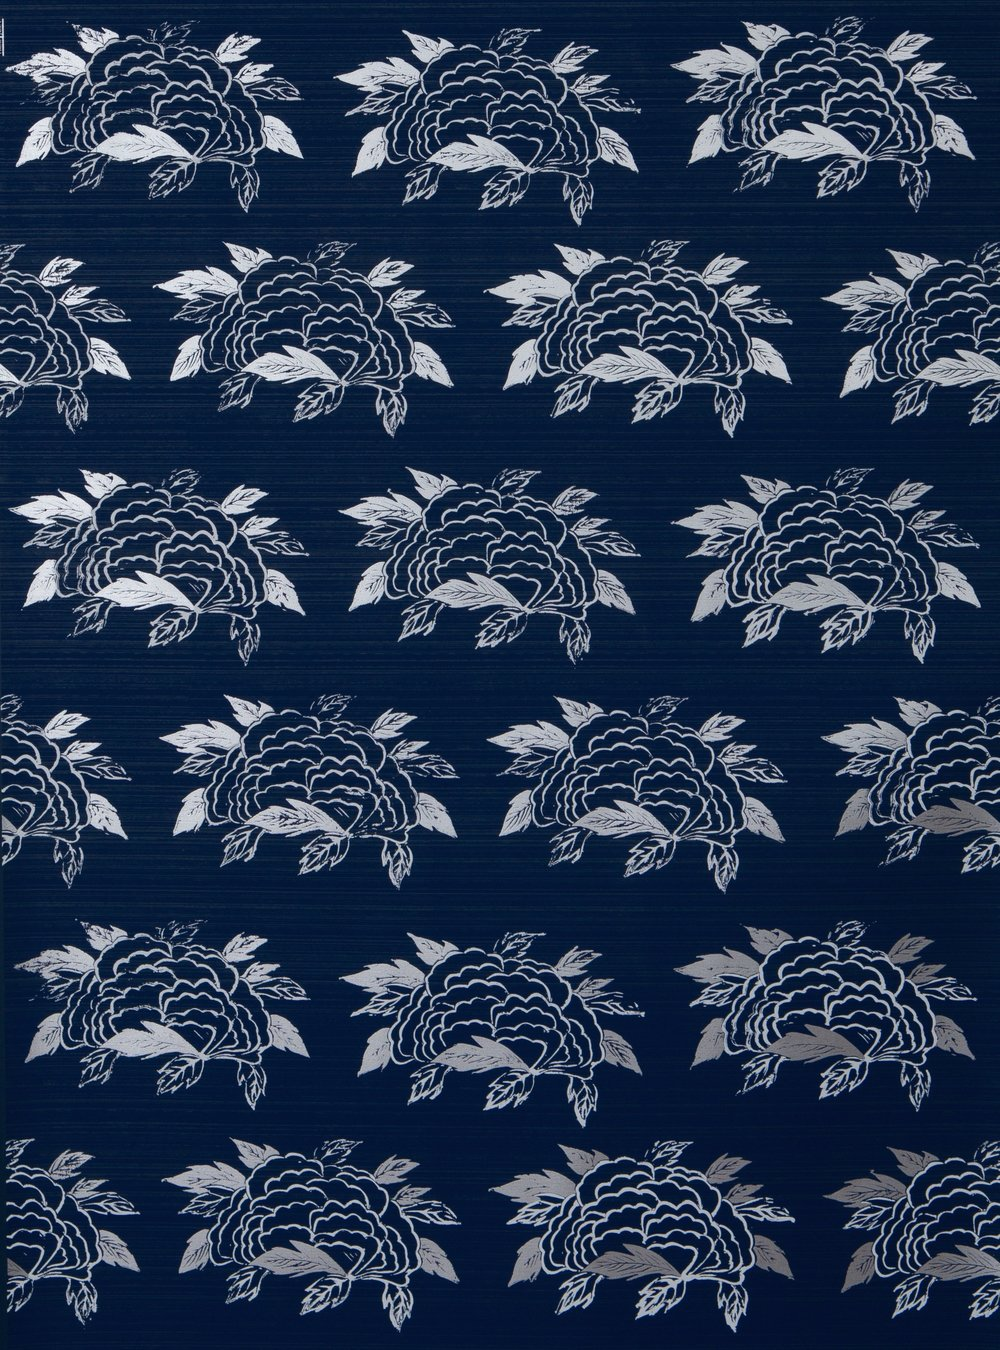 CHRYSANTHEMUM I NAVY